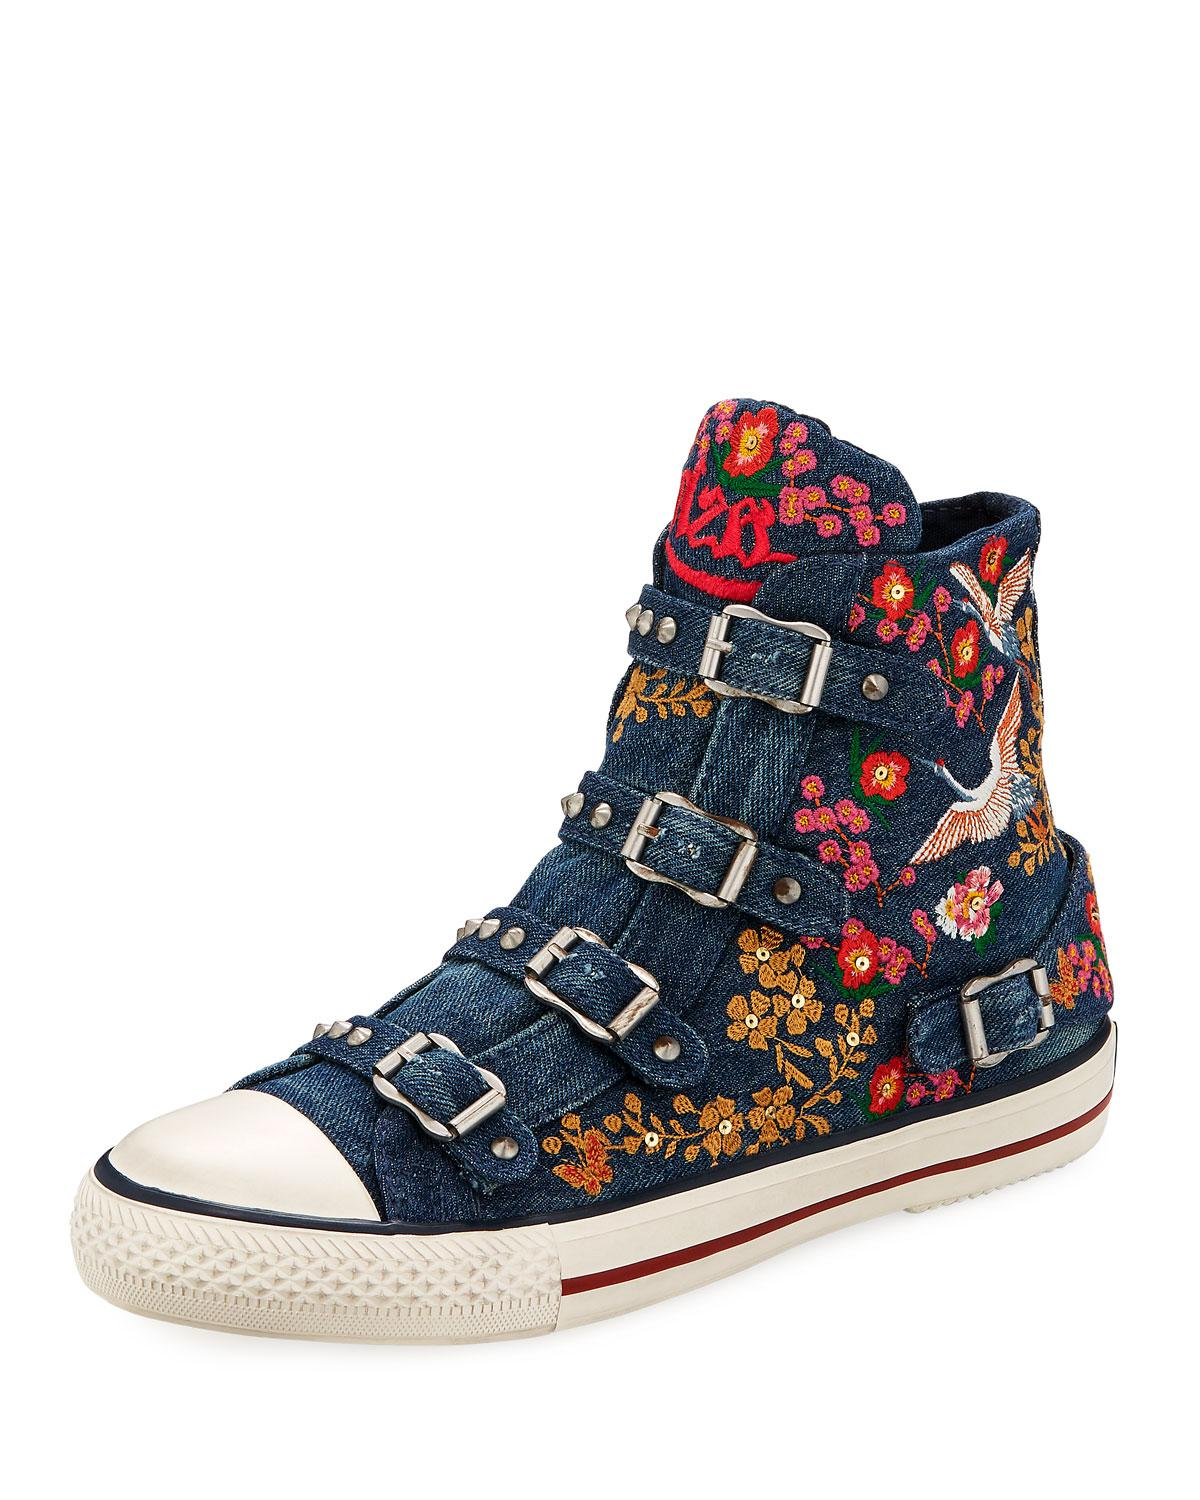 Ash Vivi Embroidered Buckle Hi-Top Sneaker 8RLoMpJ4